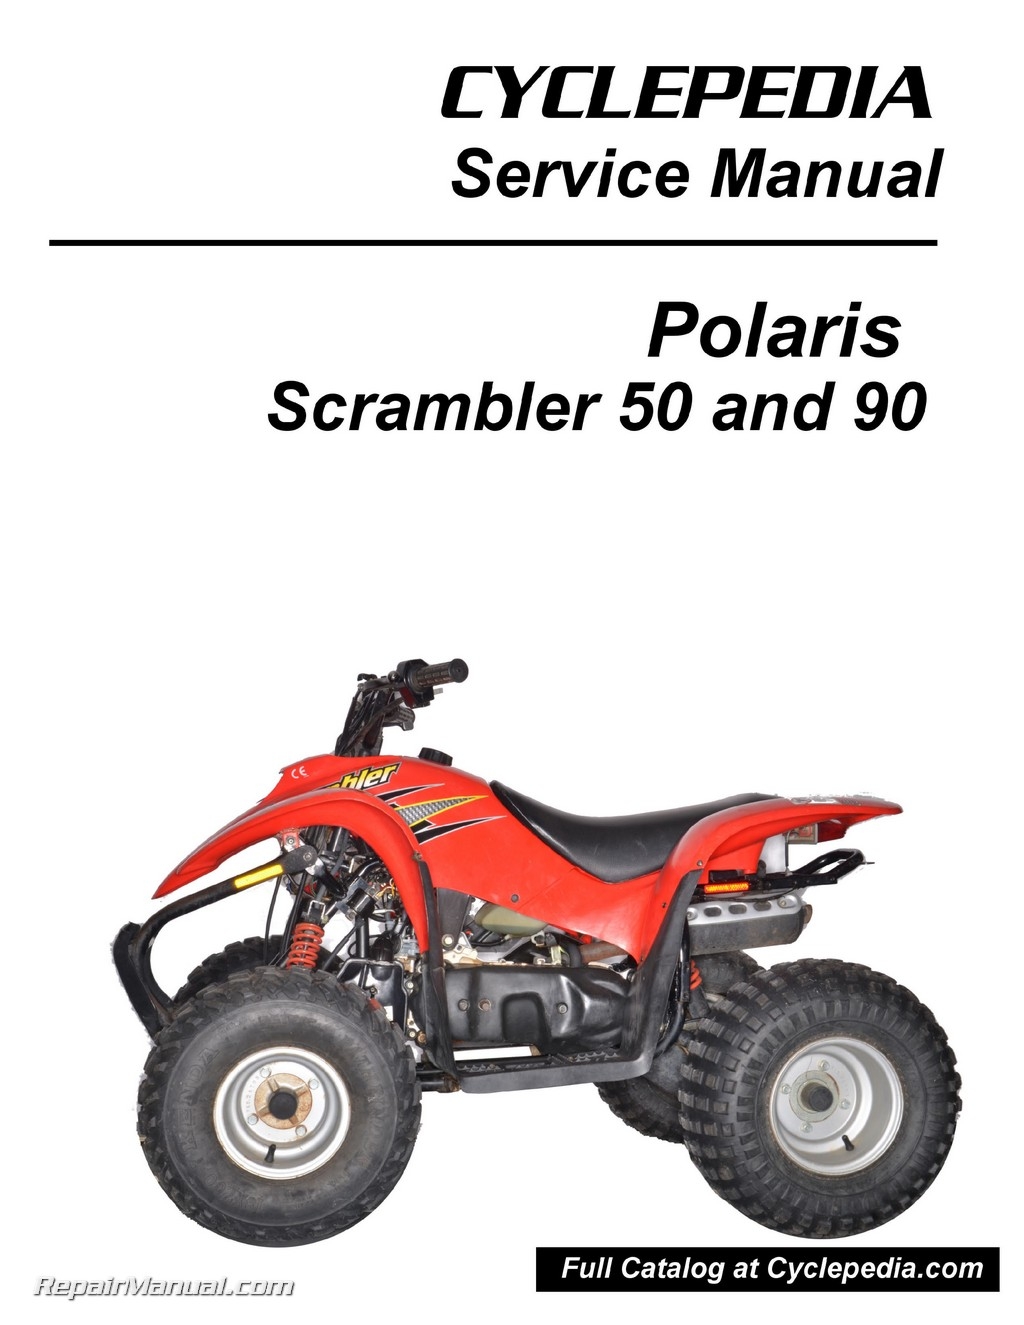 polaris 50cc 90cc scrambler atv print service manual by cyclepedia rh repairmanual com